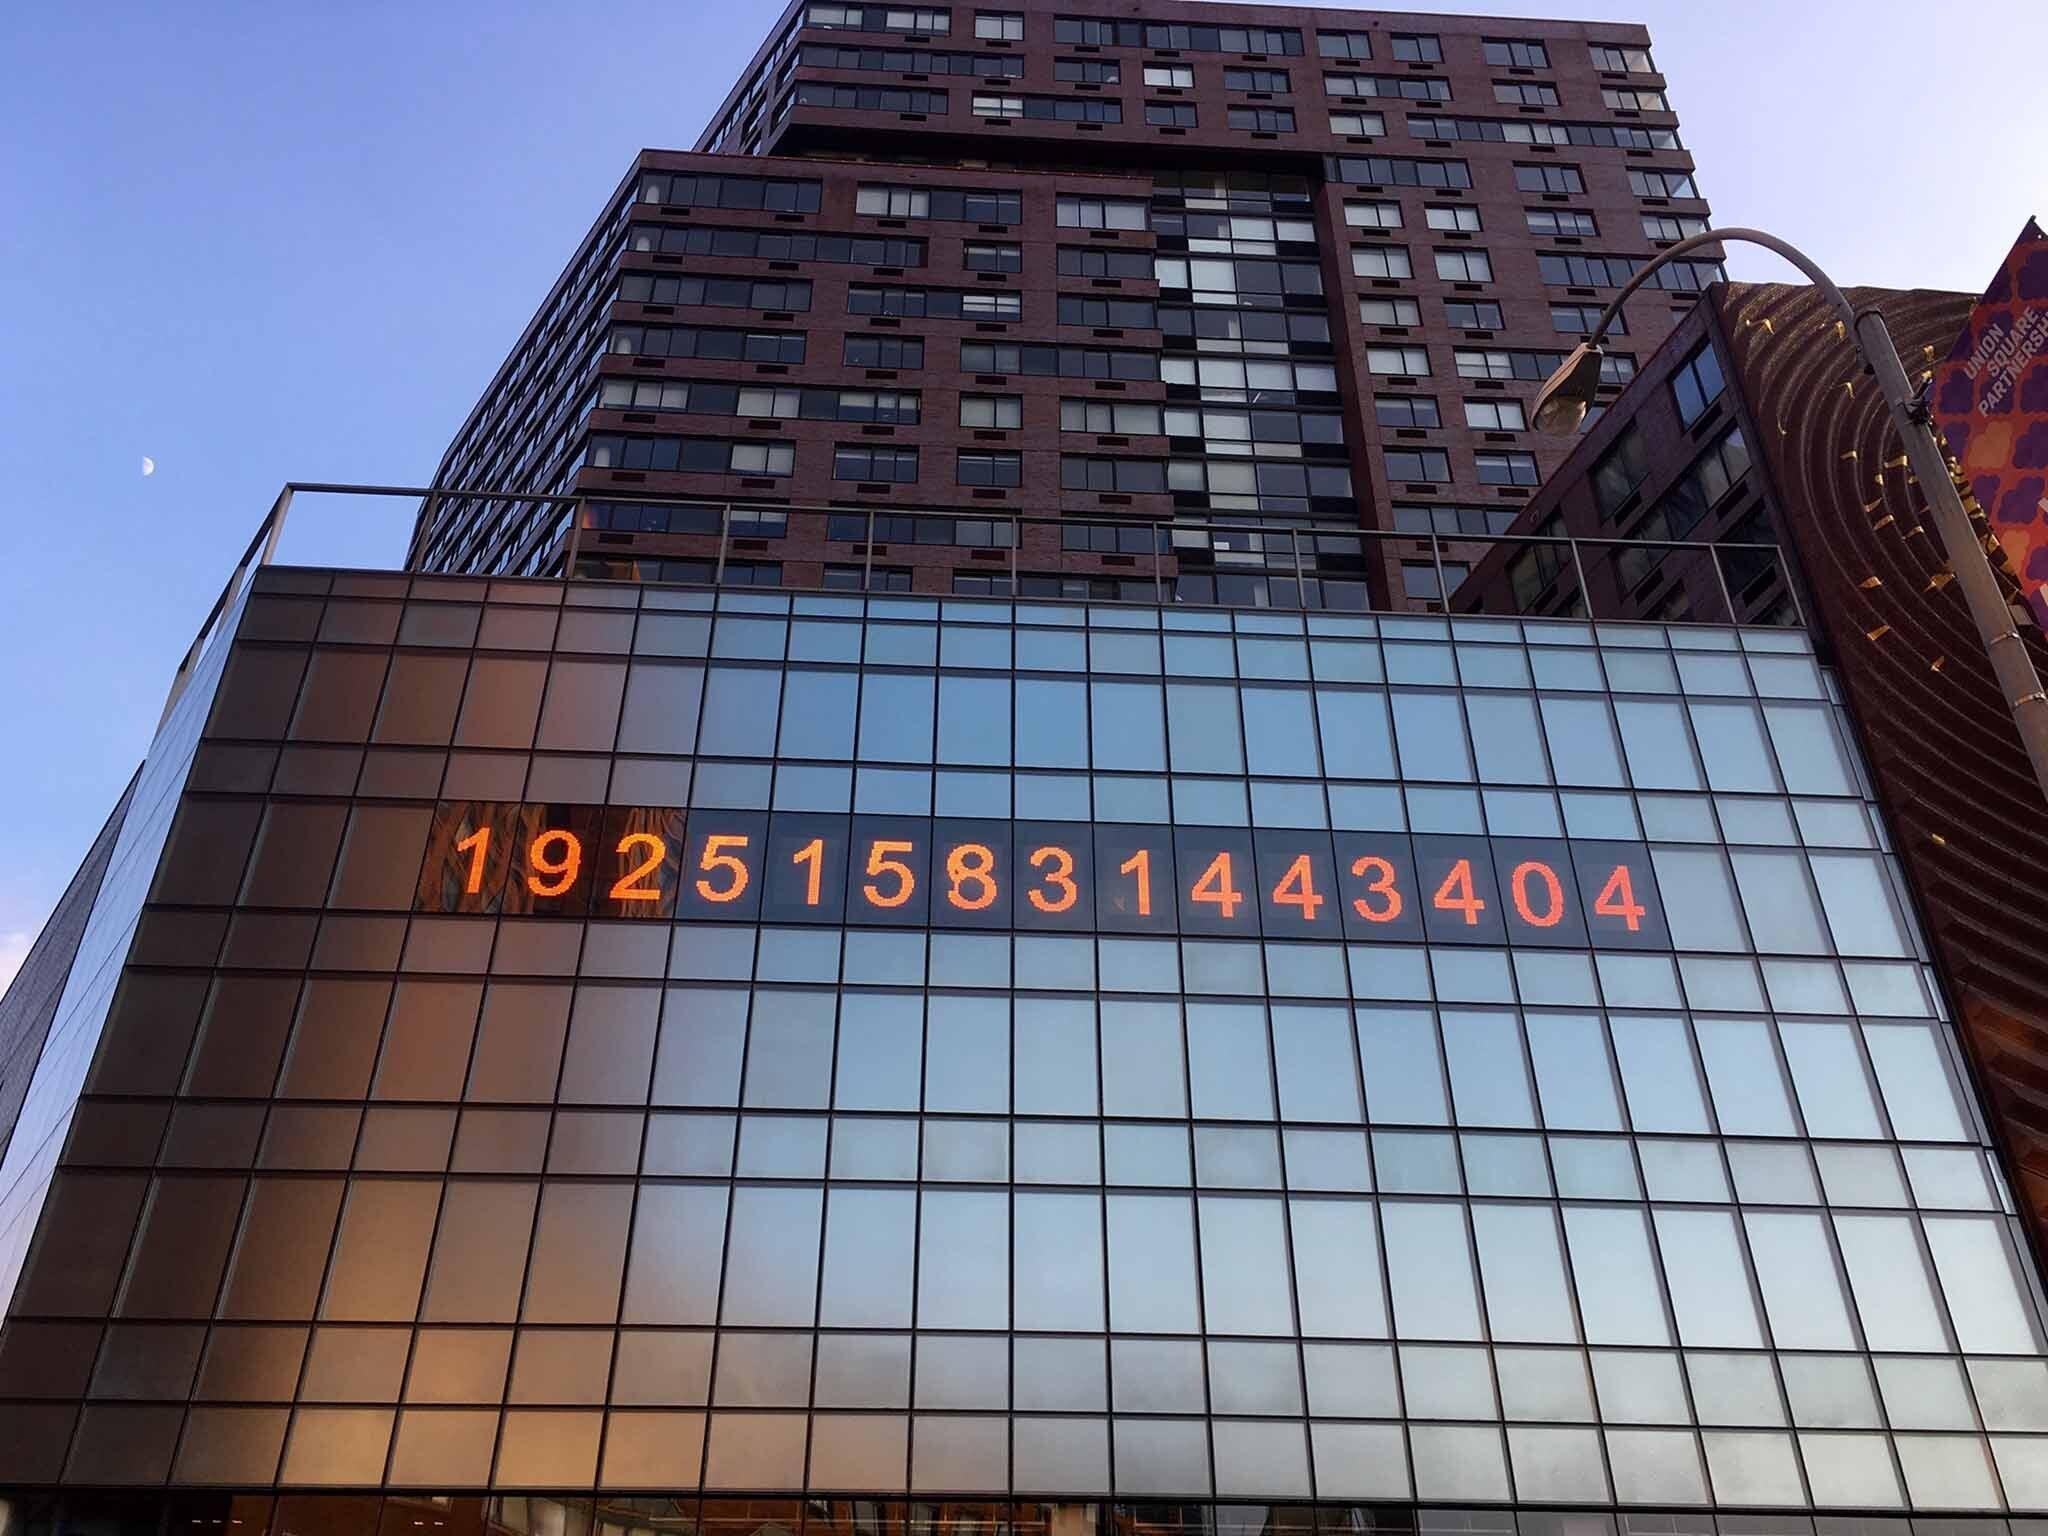 Union Square's giant metronome clock is now a climate crisis countdown